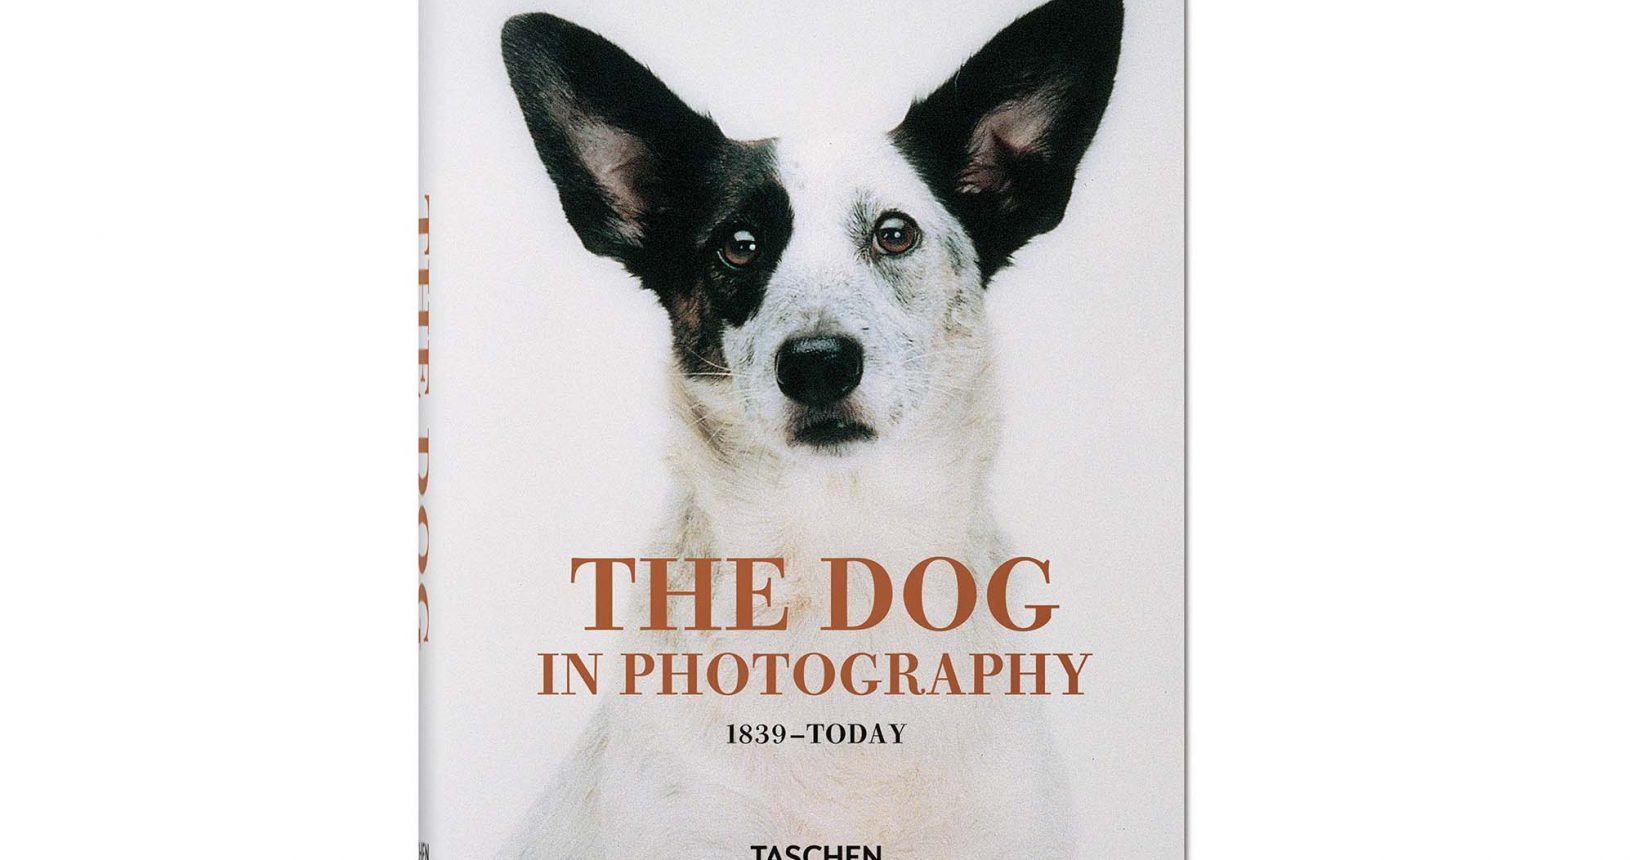 Raymond Merritt: The Dog in Photography, 1839 - today. © TASCHEN